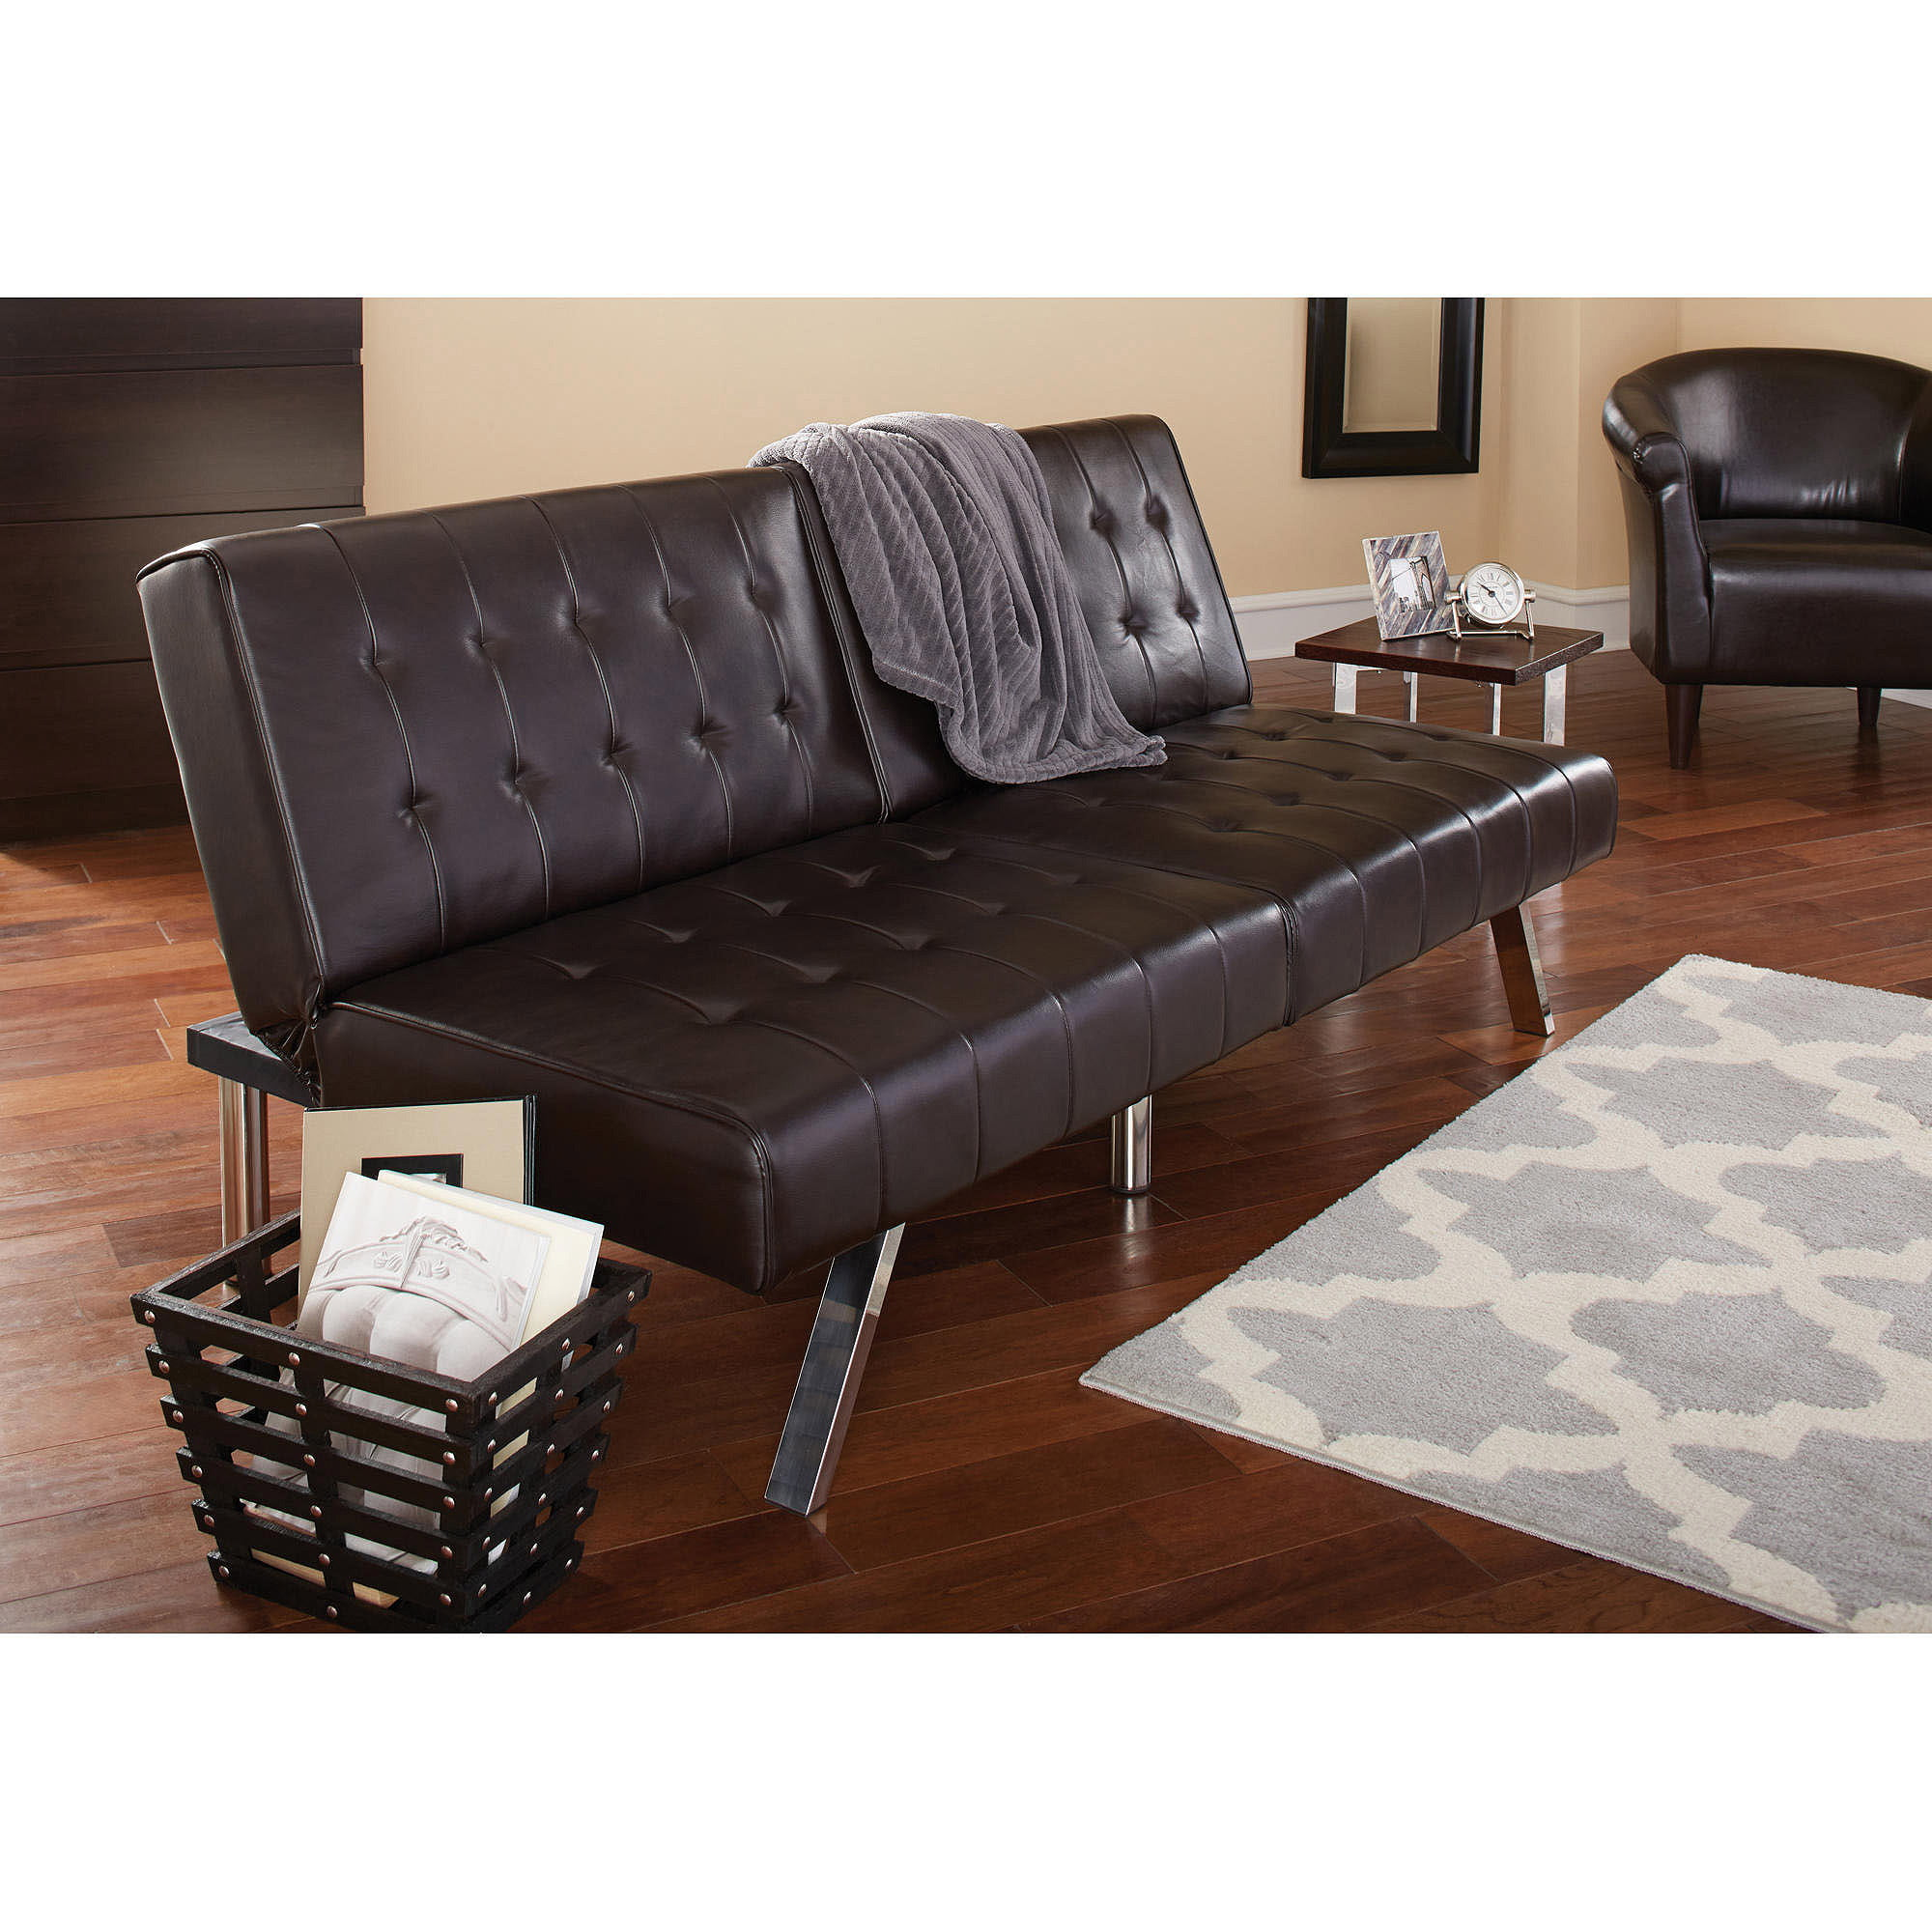 mainstays morgan faux leather tufted convertible futon brown   walmart   mainstays morgan faux leather tufted convertible futon brown      rh   walmart